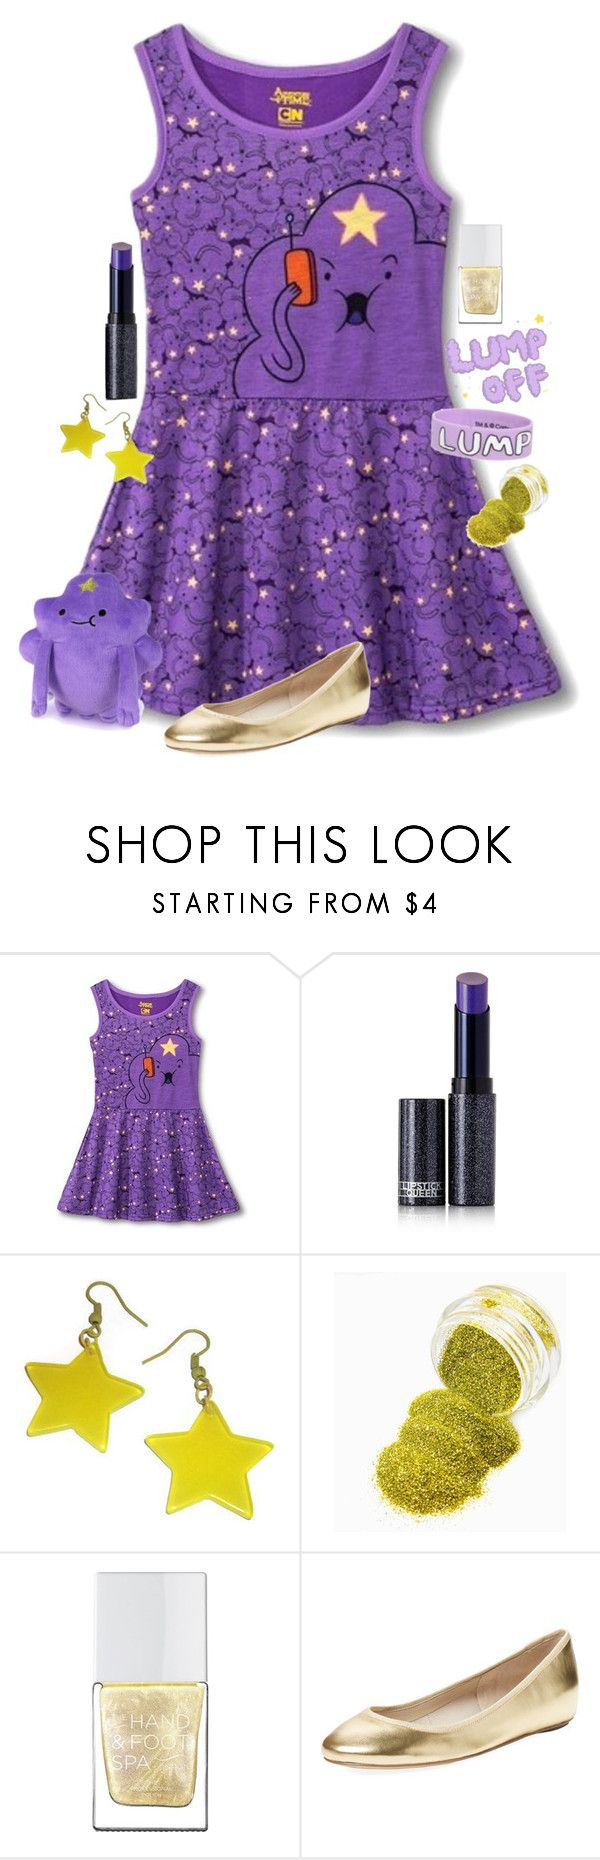 """""""Lumpy Space Princess"""" by adventuretimekitty ❤ liked on Polyvore featuring Lipstick Queen, The Hand & Foot Spa, Elorie, adventuretime and lumpyspaceprincess"""